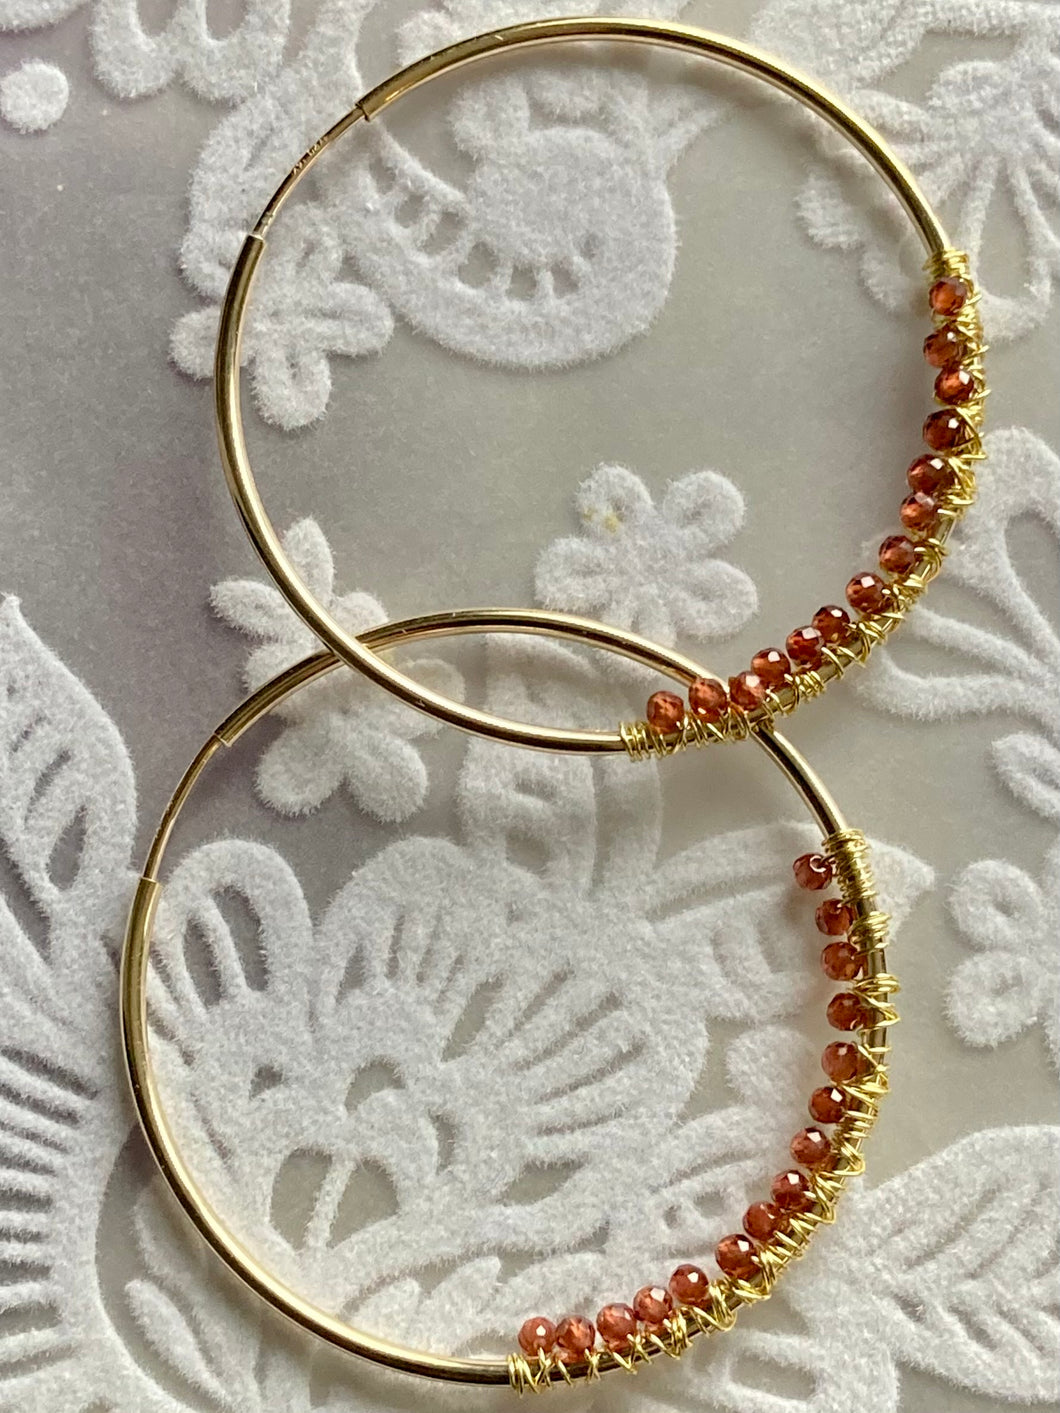 Gold filled 38 mm hoop earrings with wire wrapped teeny garnets